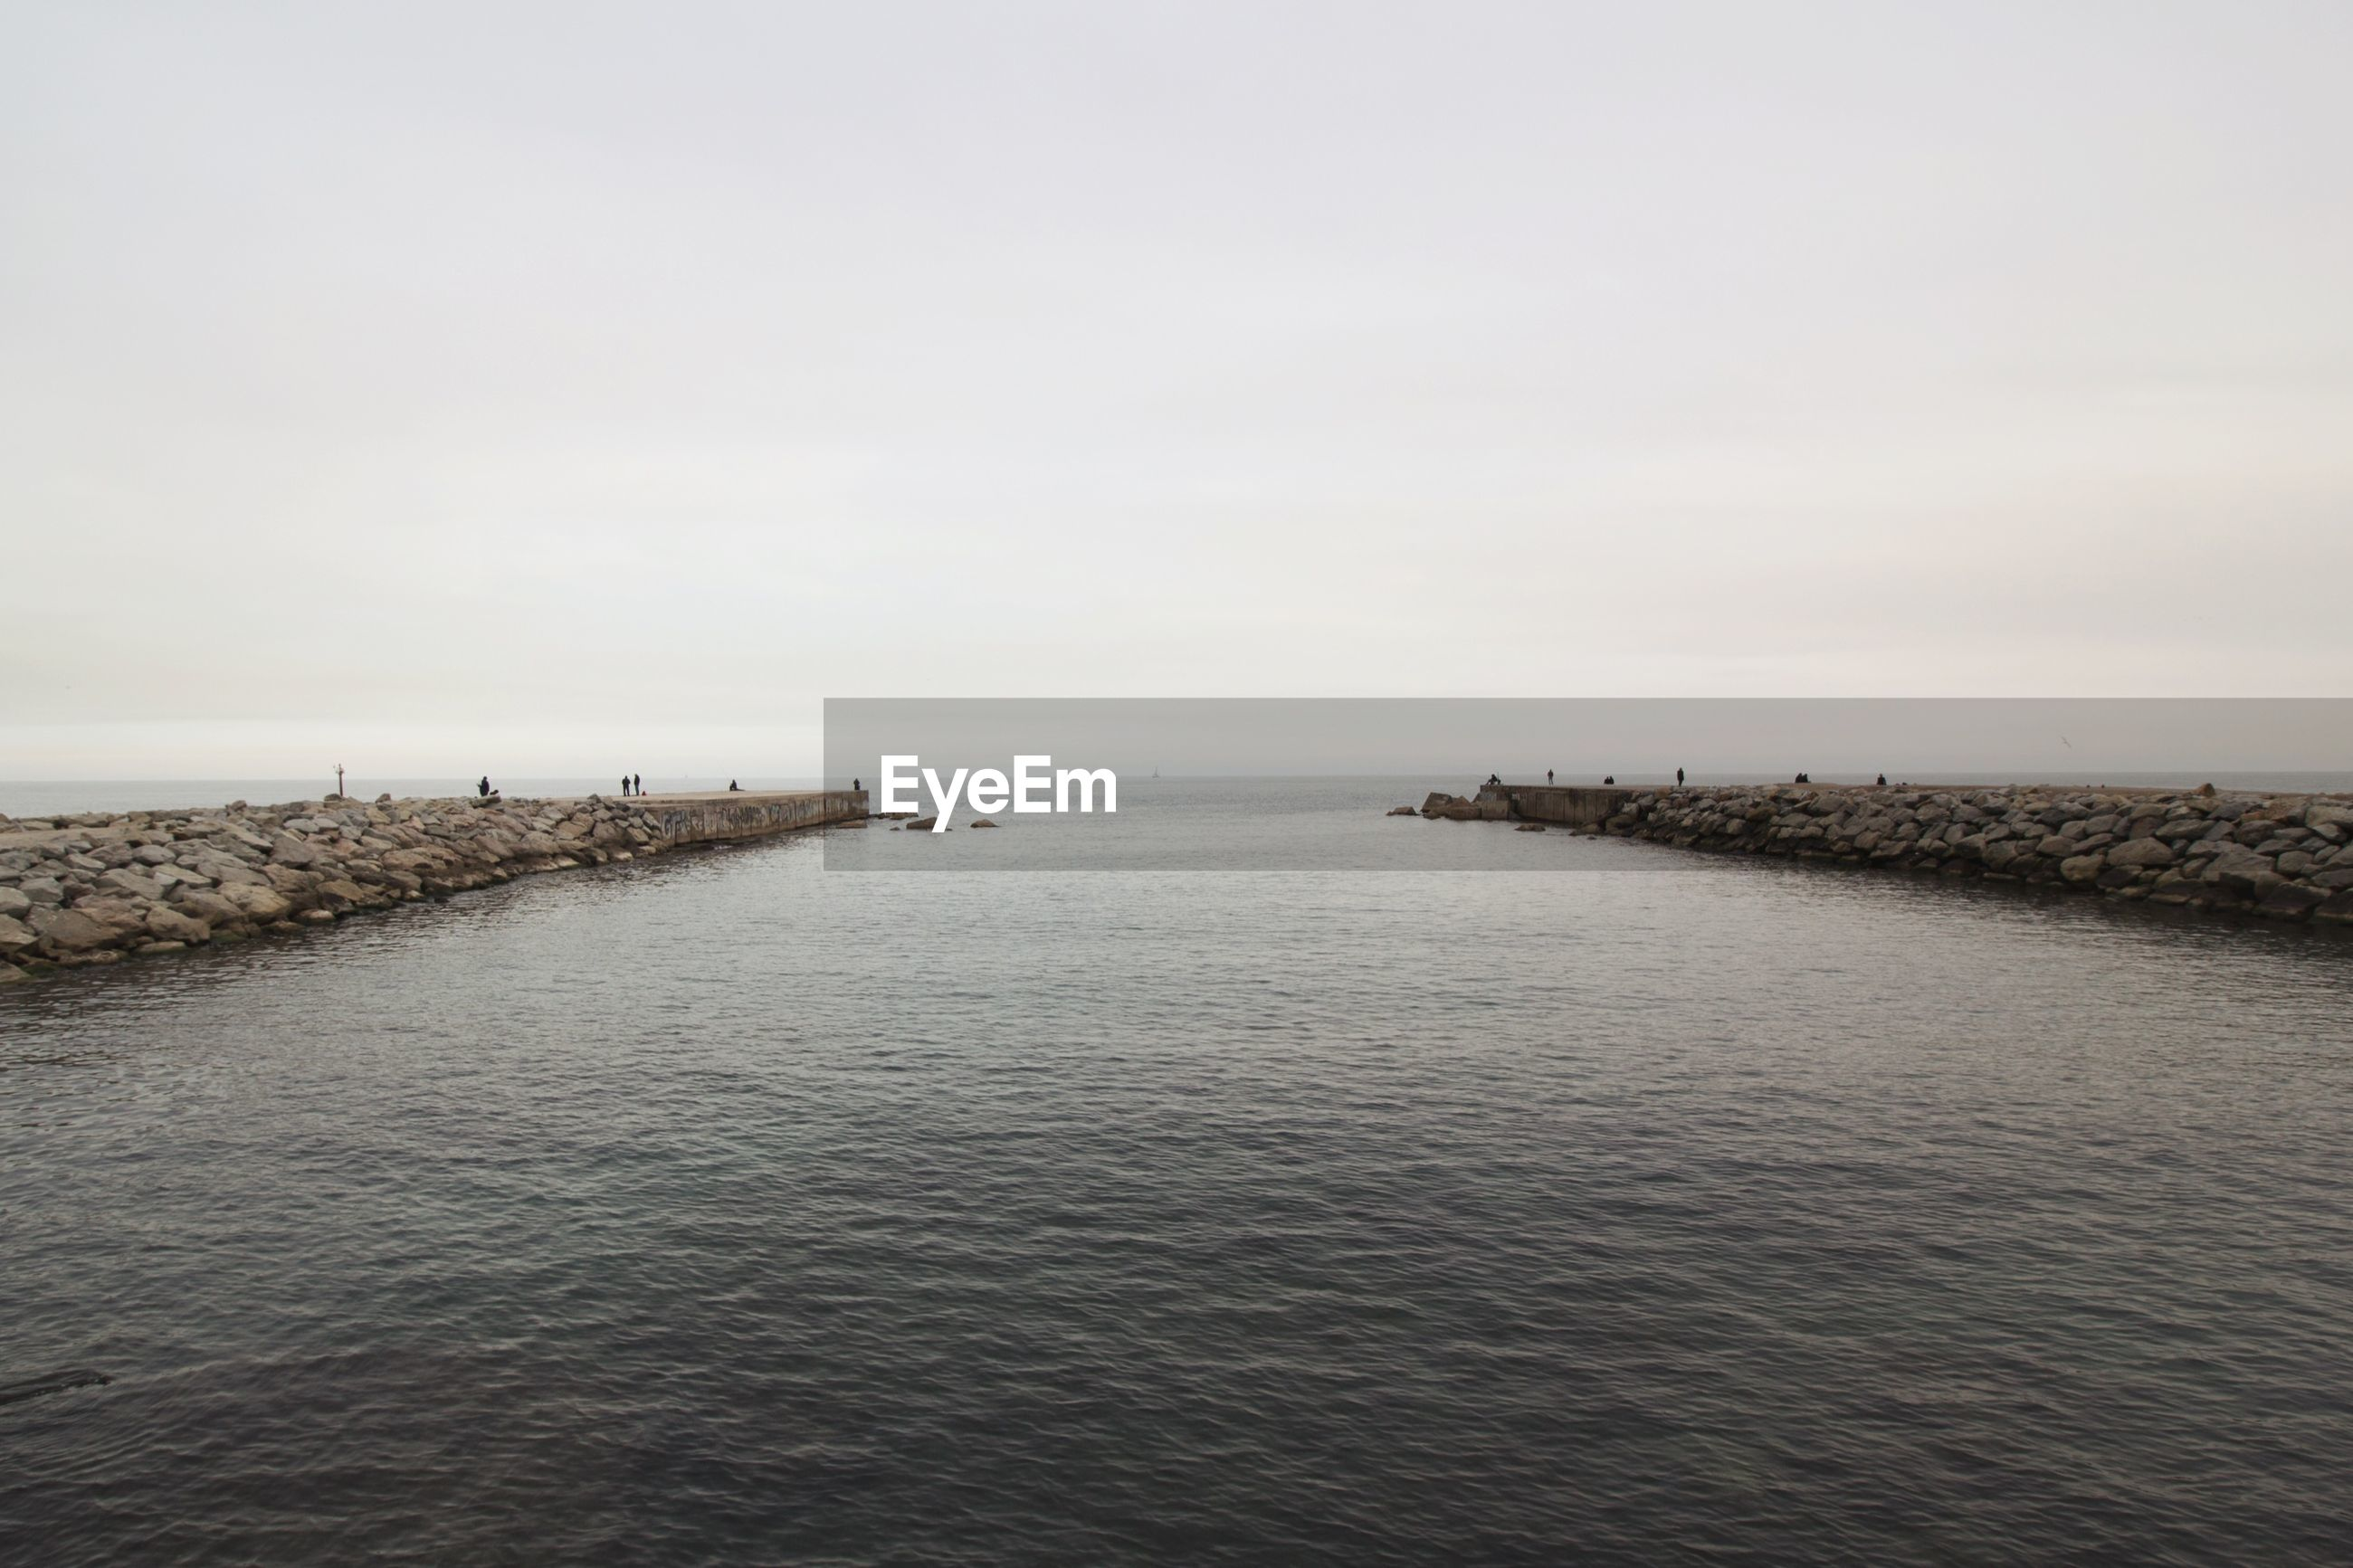 View of tourist on jetty in sea